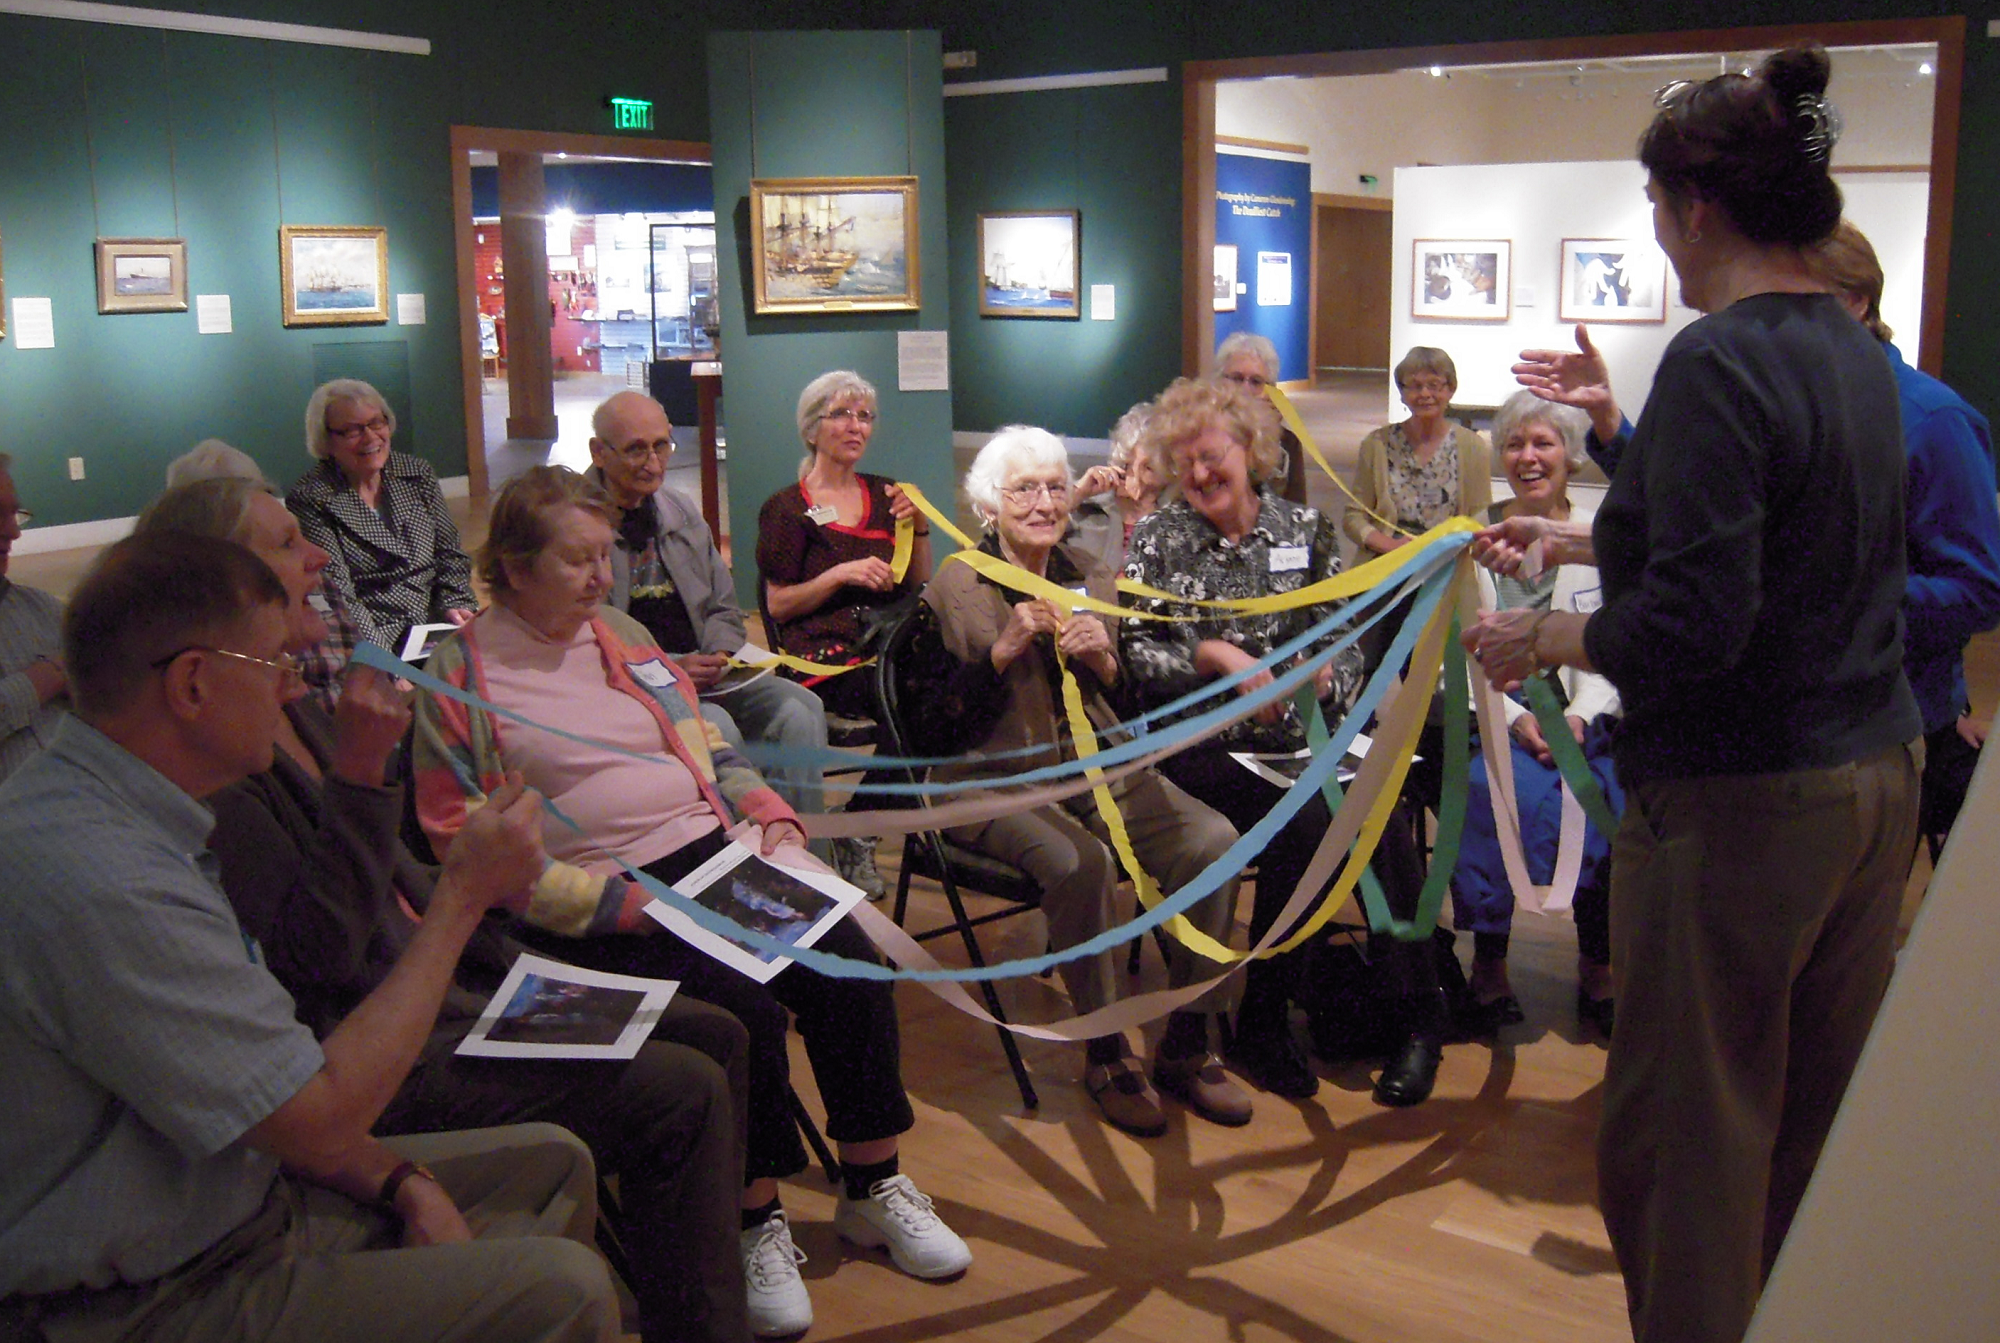 A group of 15 adults are holding colored streamers while seated in a gallery of paintings.